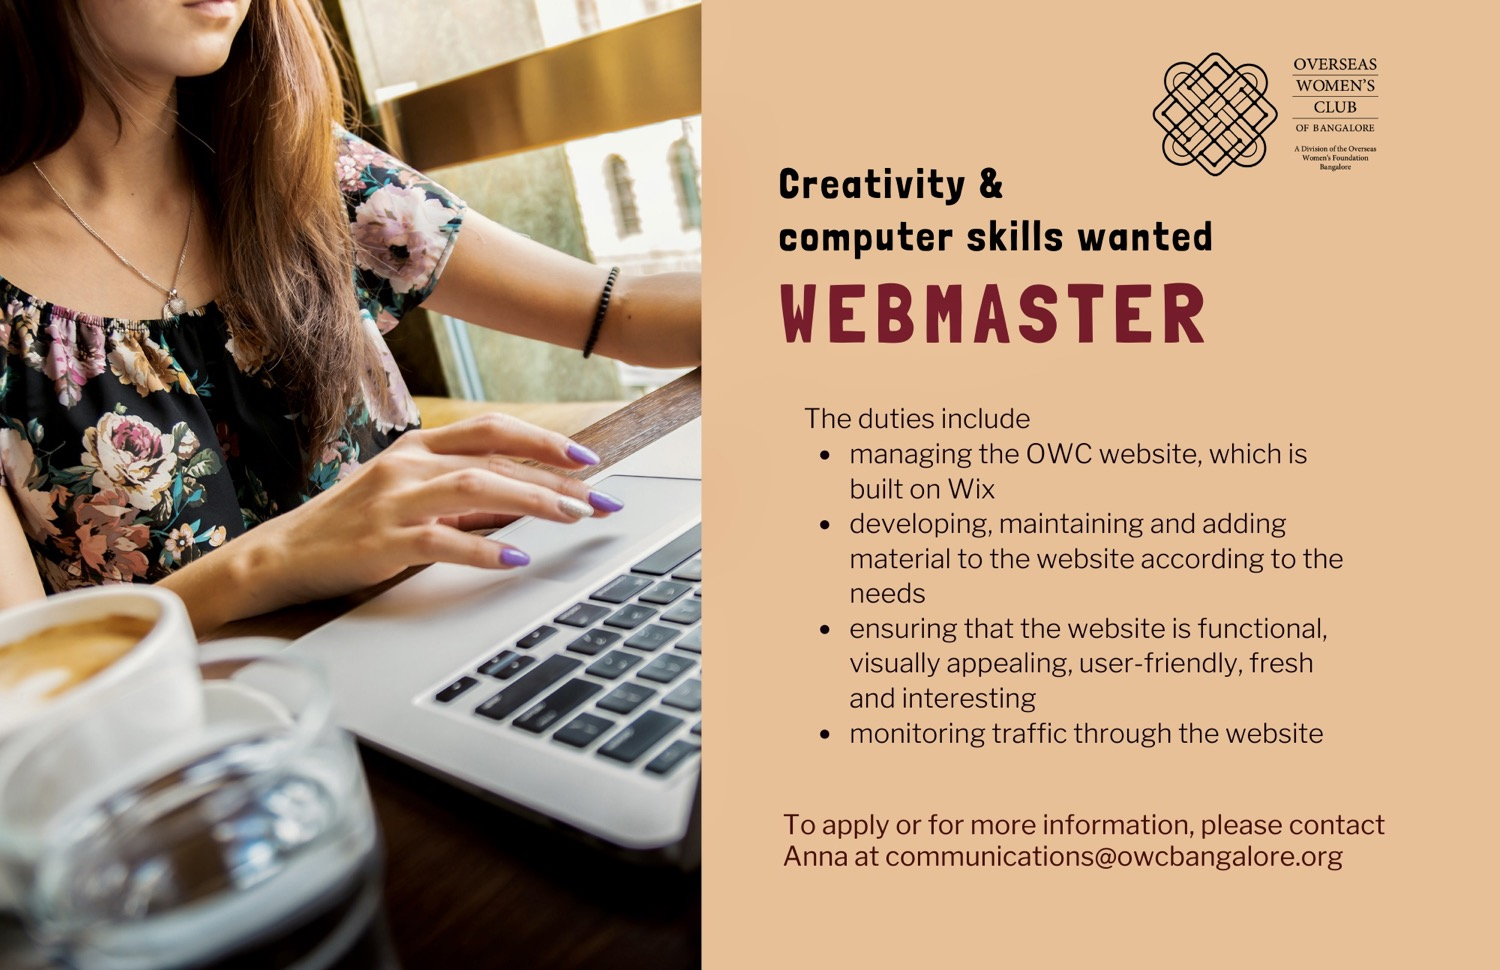 Are you a Webmaster?